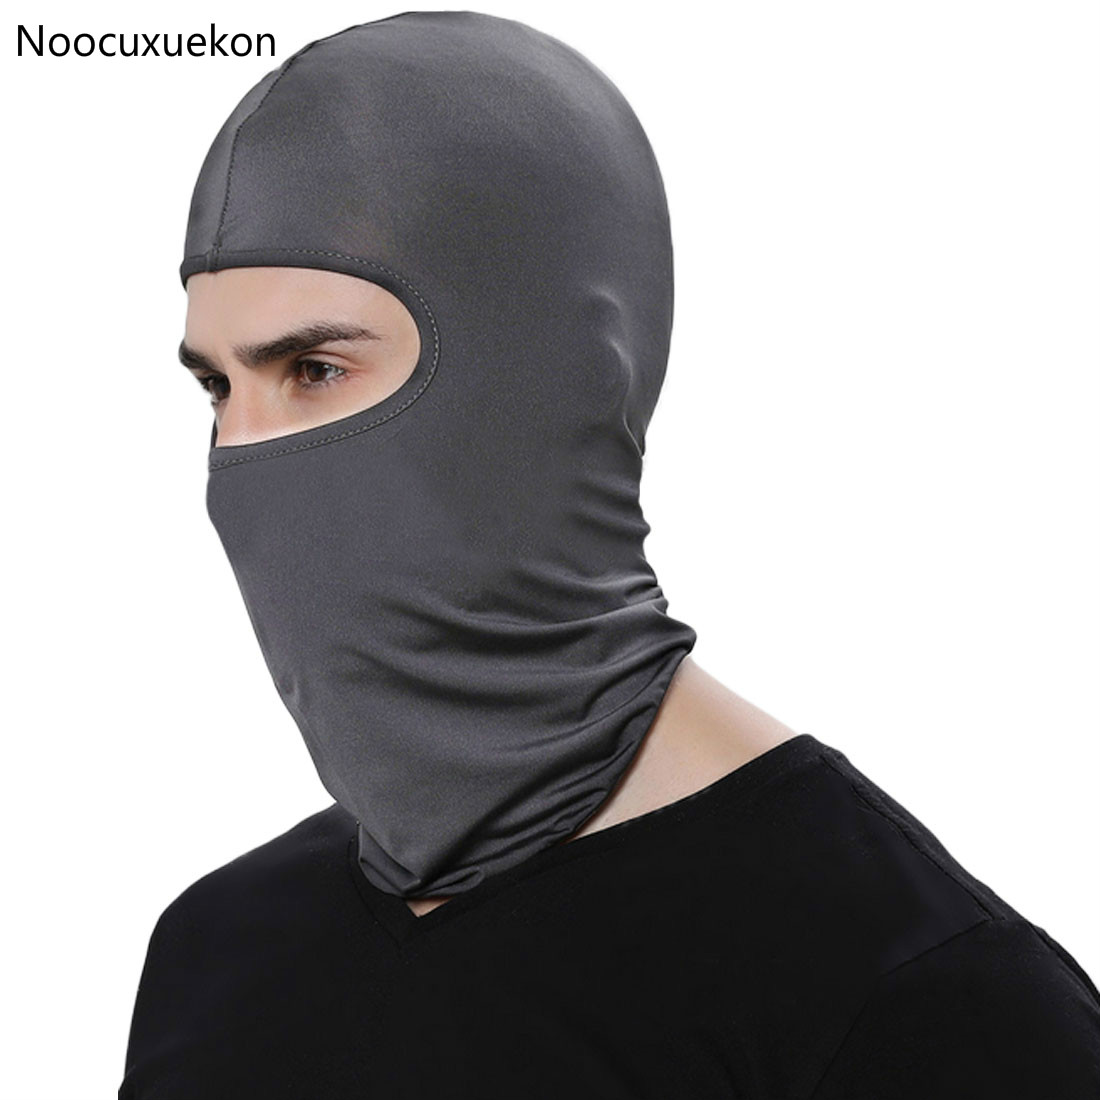 Hot Selling Motorcycle Face Mask Cycling Ski Neck Protecting Outdoor Balaclava Full Face Mask Ultra Thin Breathable Windproof цена 2017